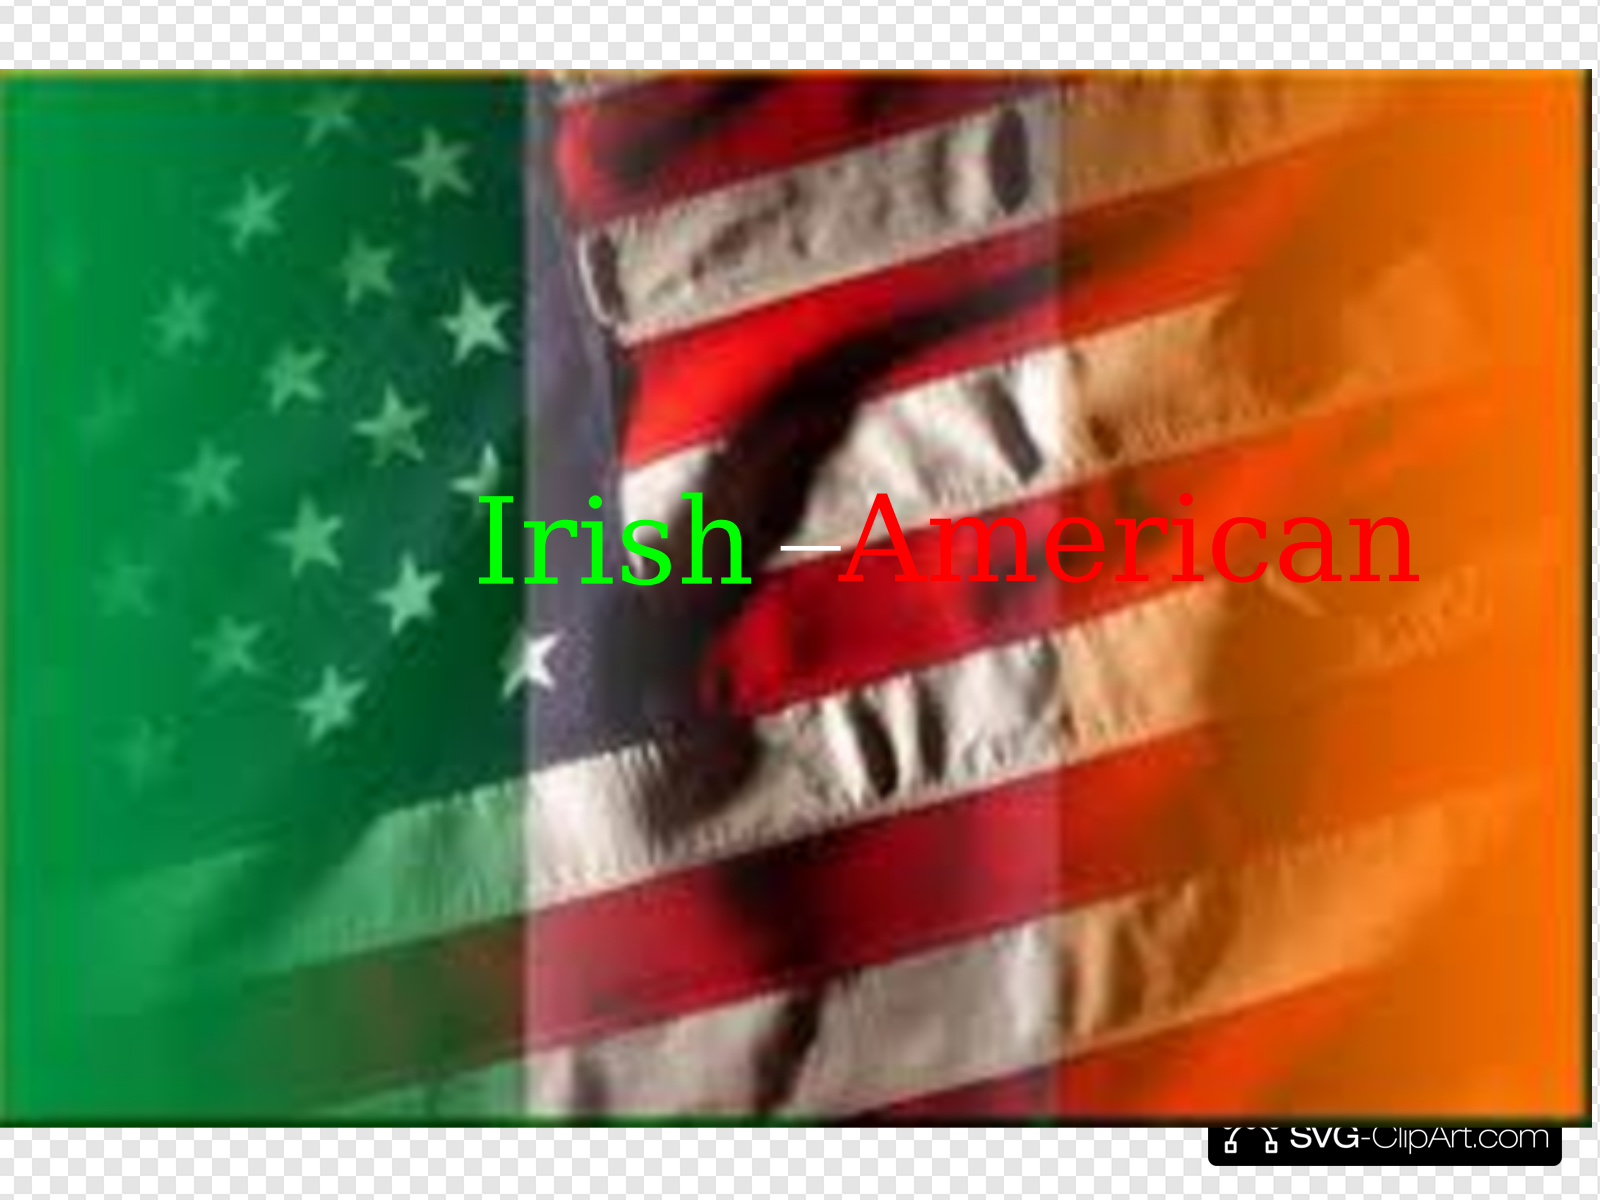 American irish clipart graphic royalty free stock Irish American Flag With Title Clip art, Icon and SVG - SVG Clipart graphic royalty free stock